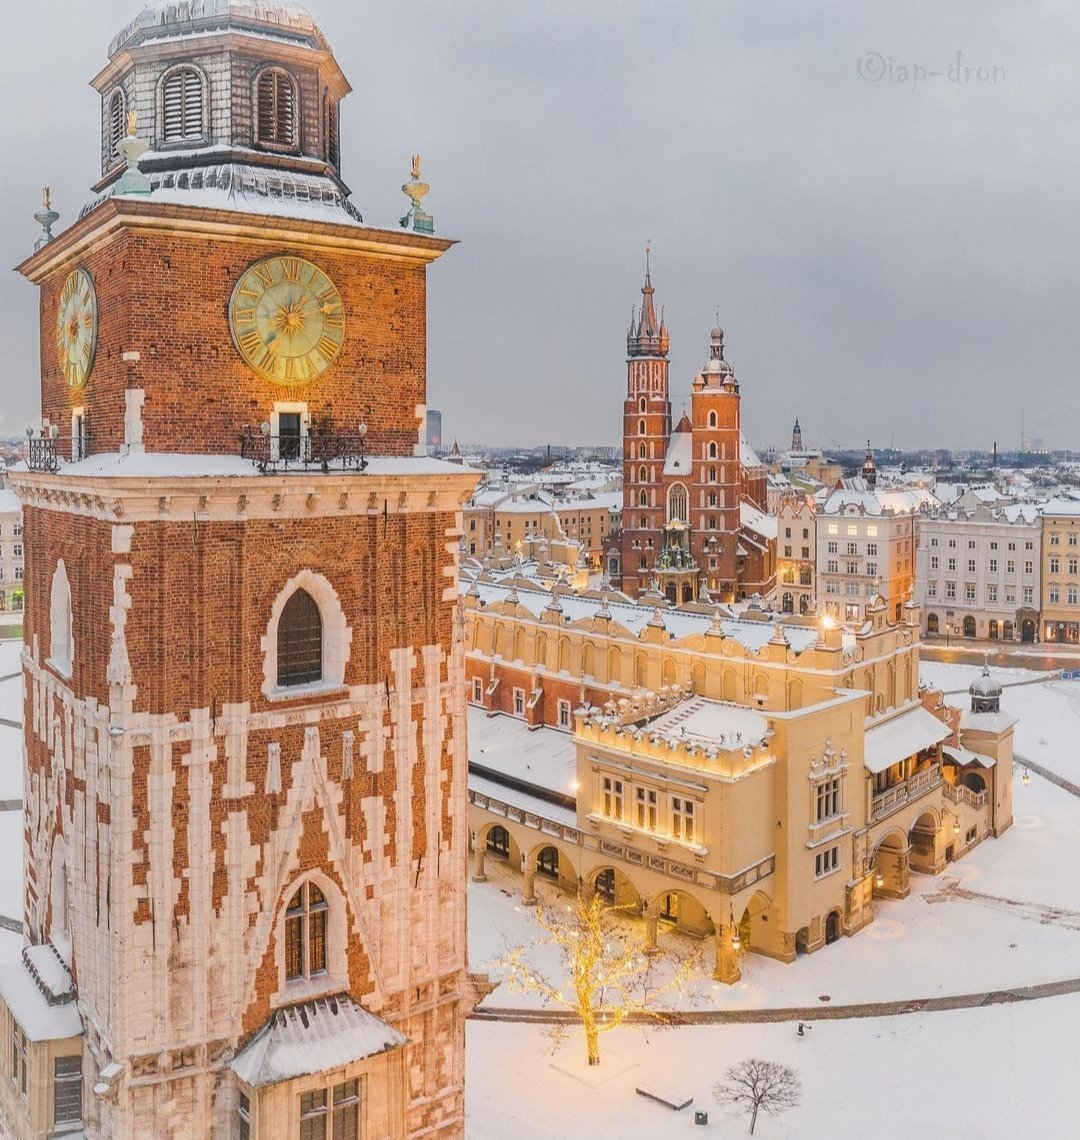 Things to do in Krakow in February